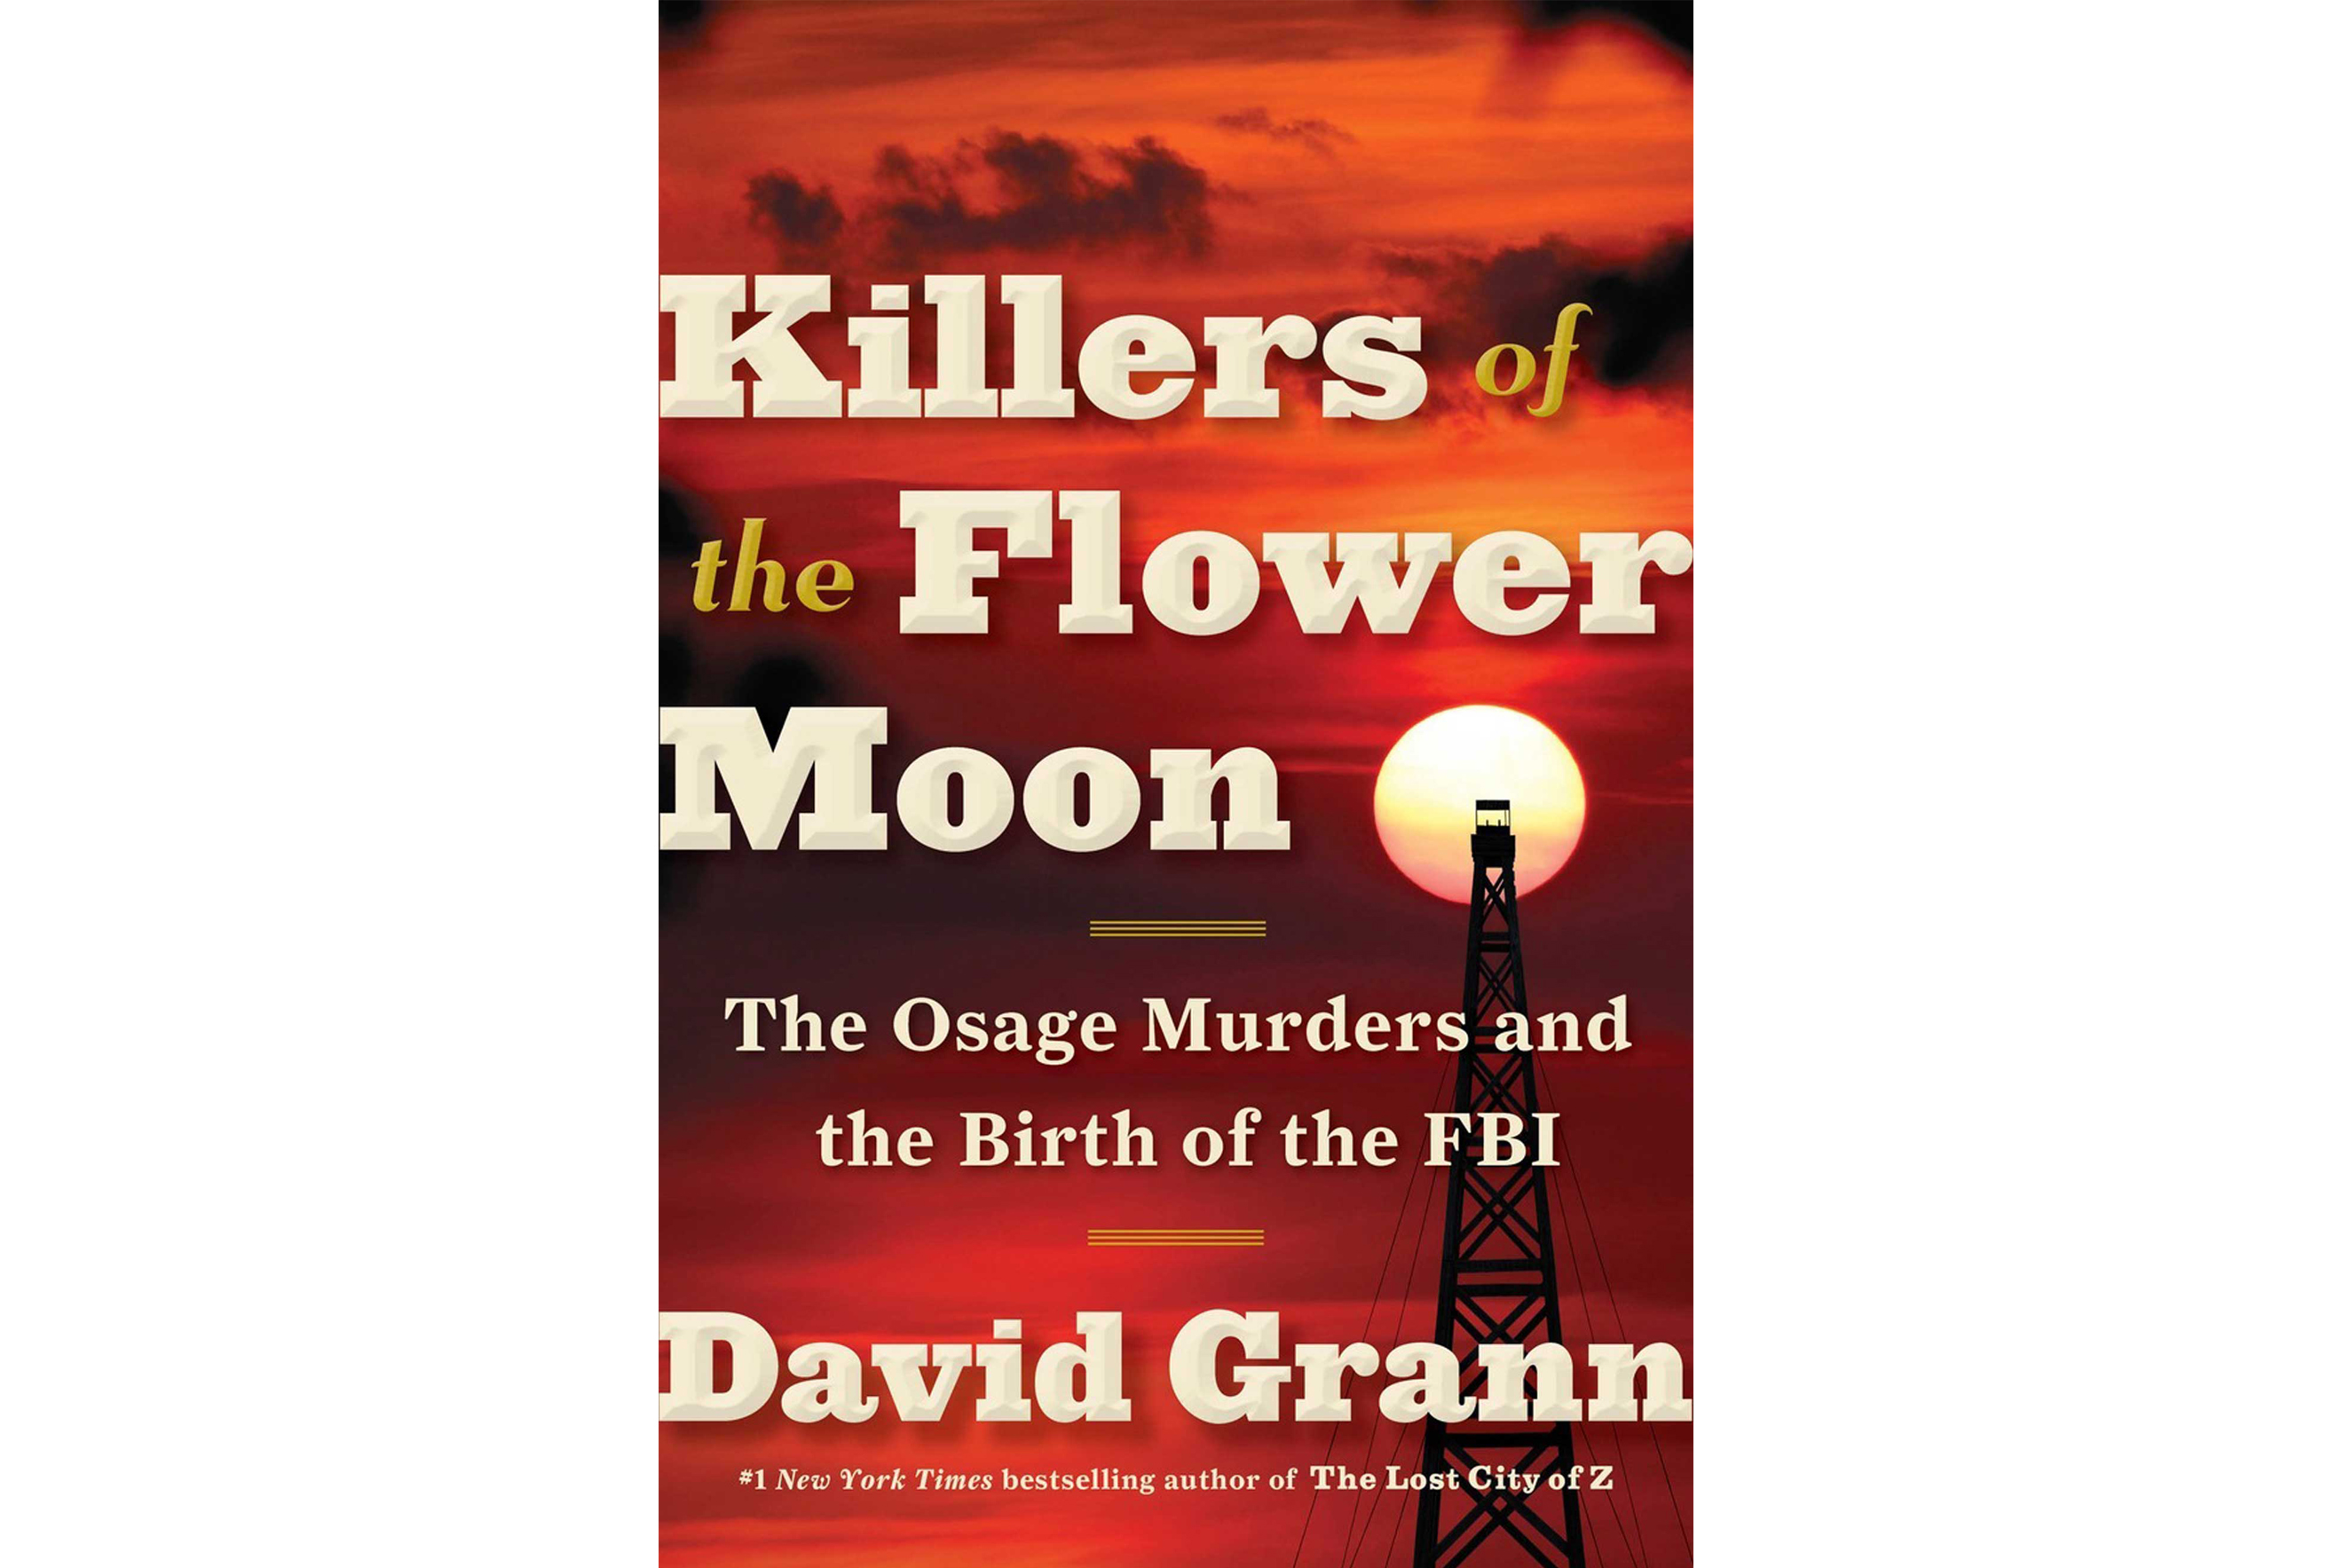 Book jacket of Killers of the Flower Moon by David Grann